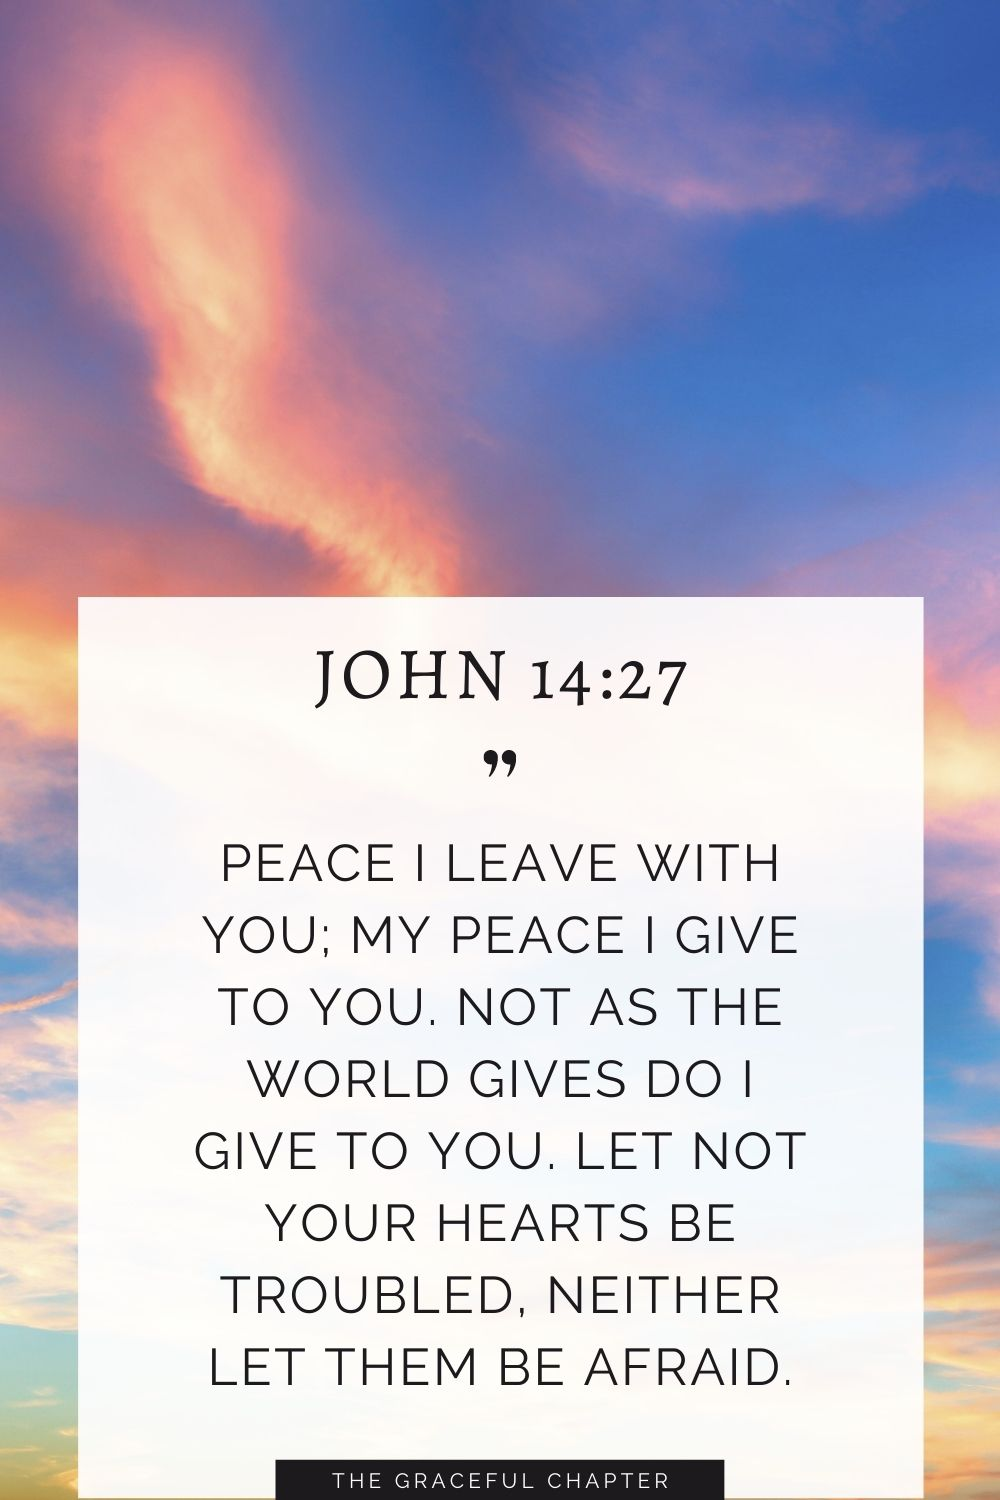 Peace I leave with you; my peace I give to you. Not as the world gives do I give to you. Let not your hearts be troubled, neither let them be afraid. John 14:27